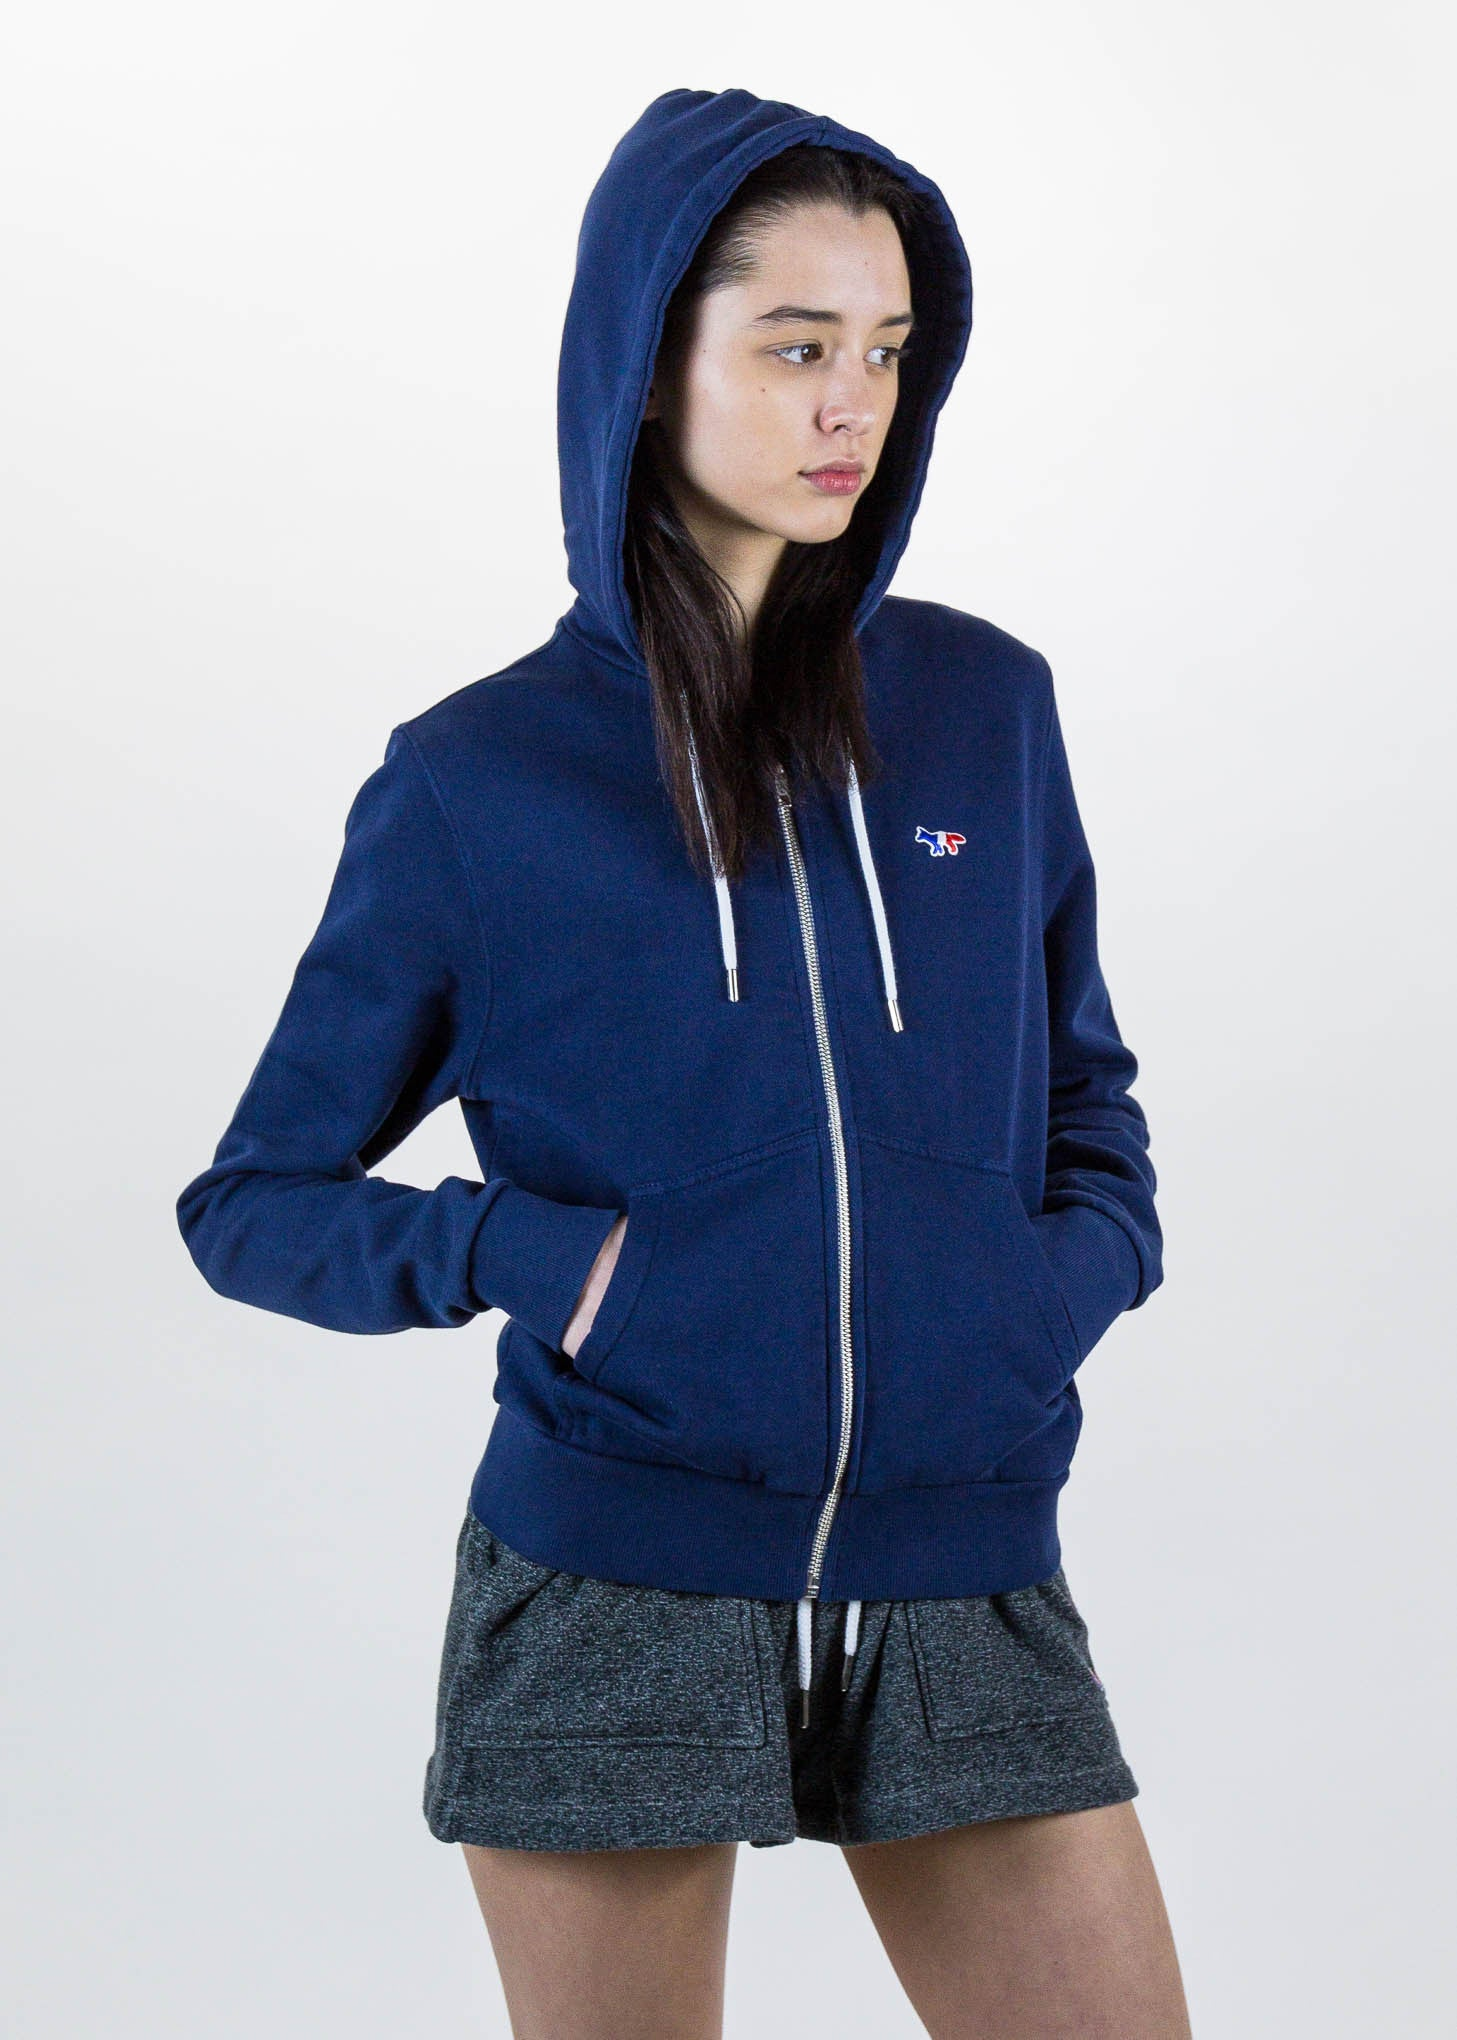 Navy Zip Hoodie Tricolor Fox Patch